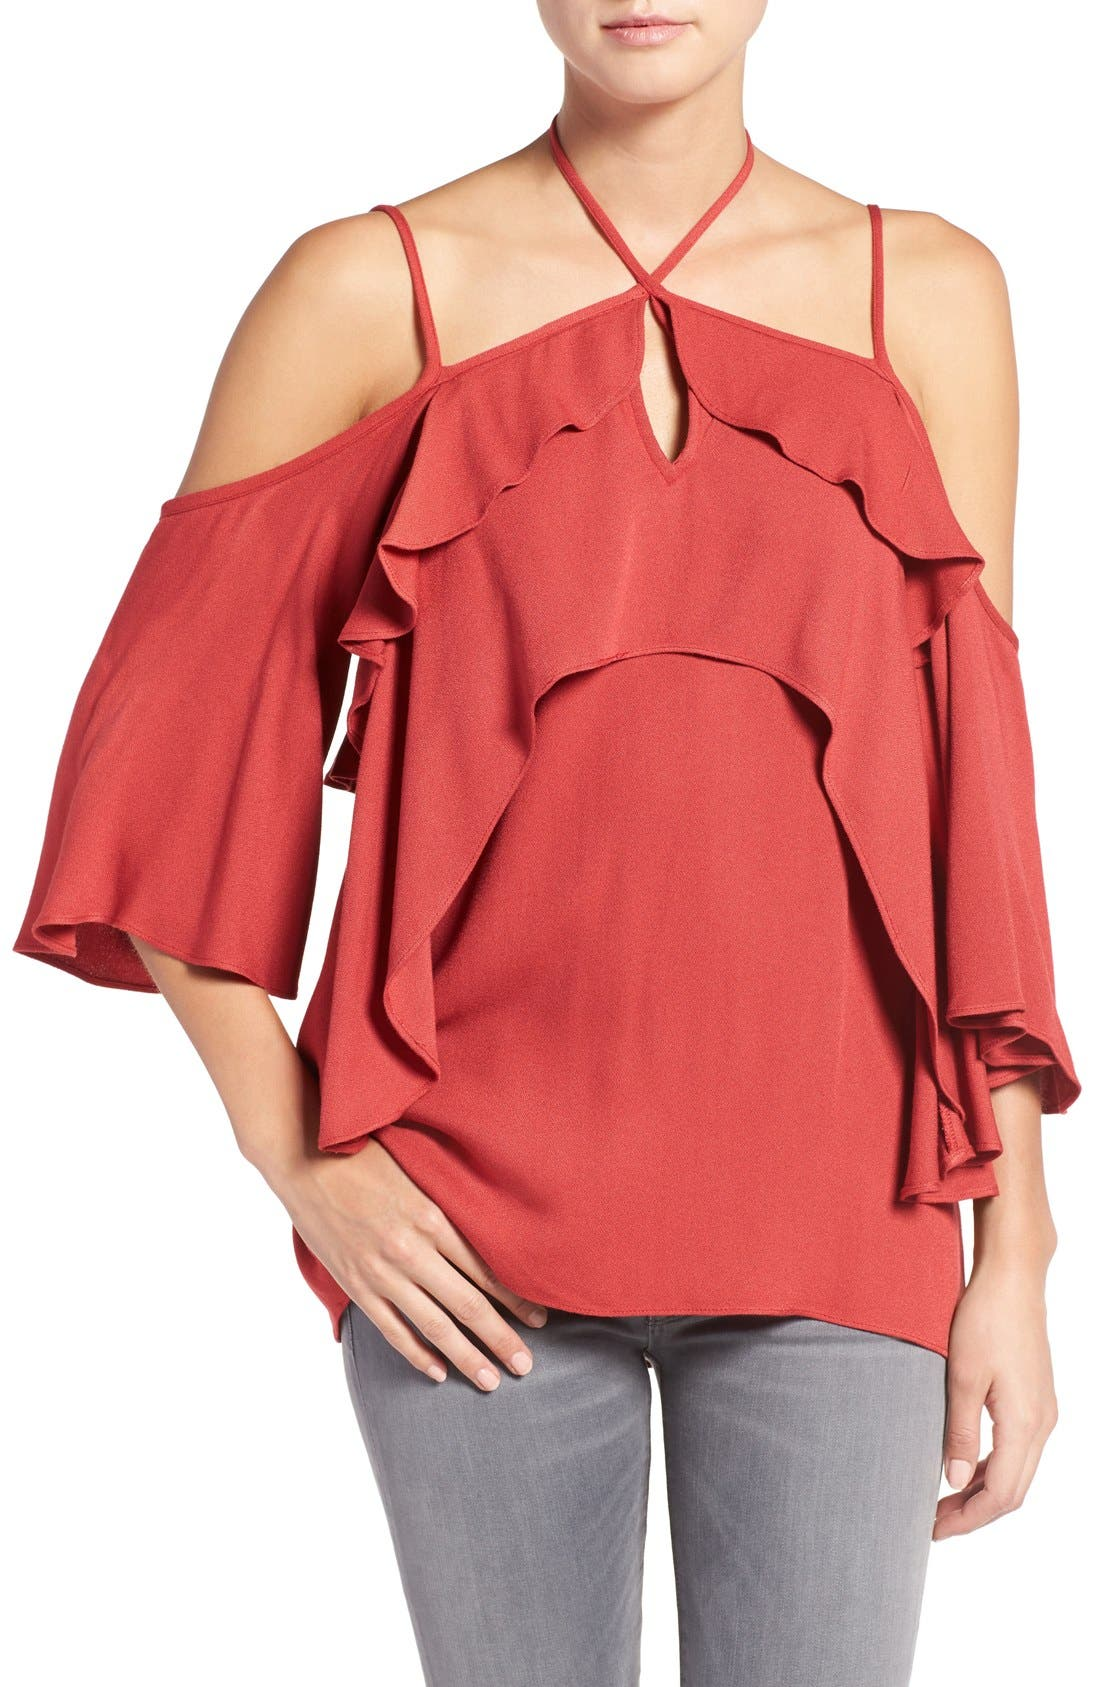 Alternate Image 1 Selected - Ella Moss 'Stella' Strappy Ruffle Cold Shoulder Top